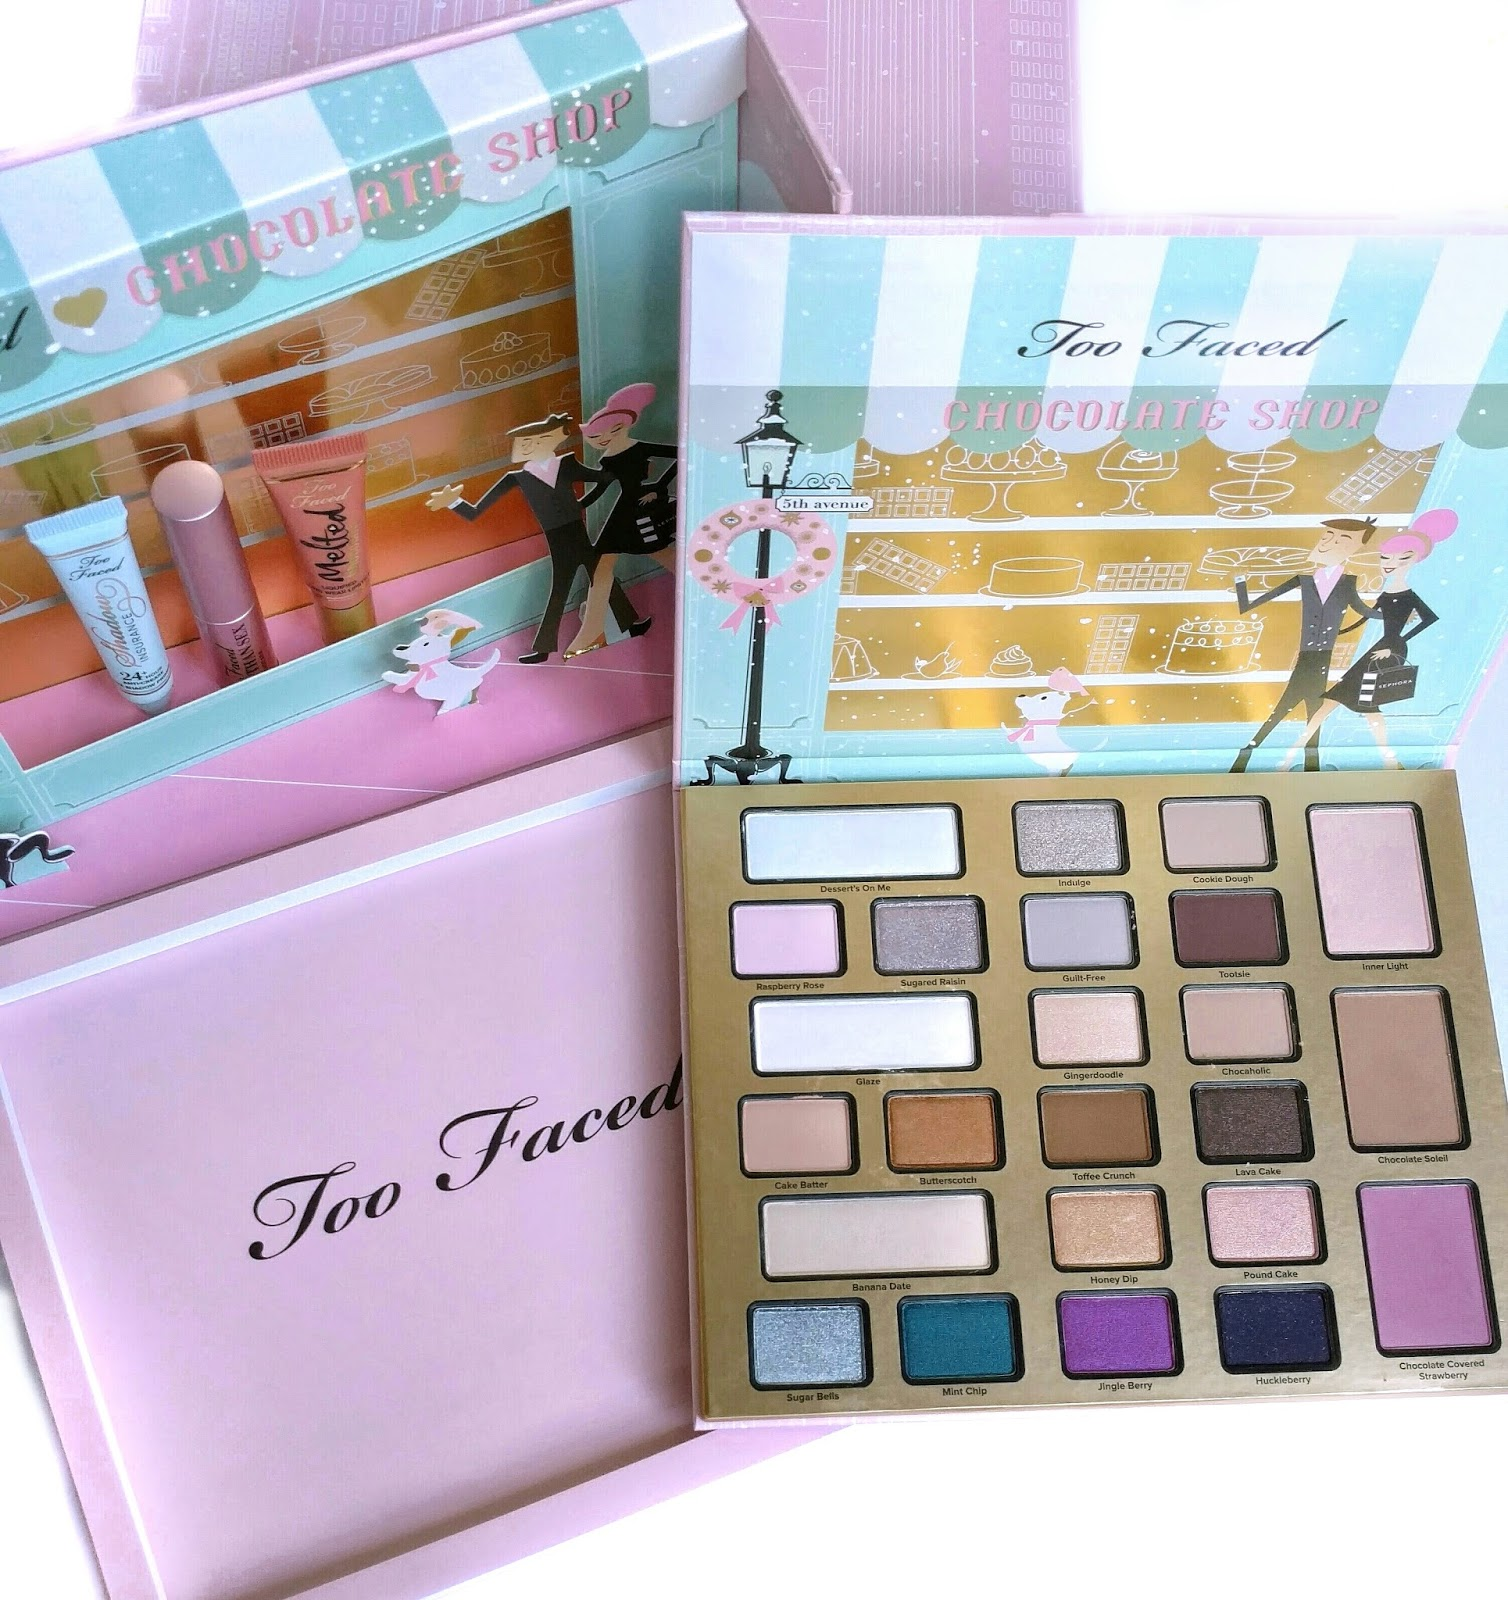 Too Faced The Chocolate Shop Holiday Set Review | The Budget ...